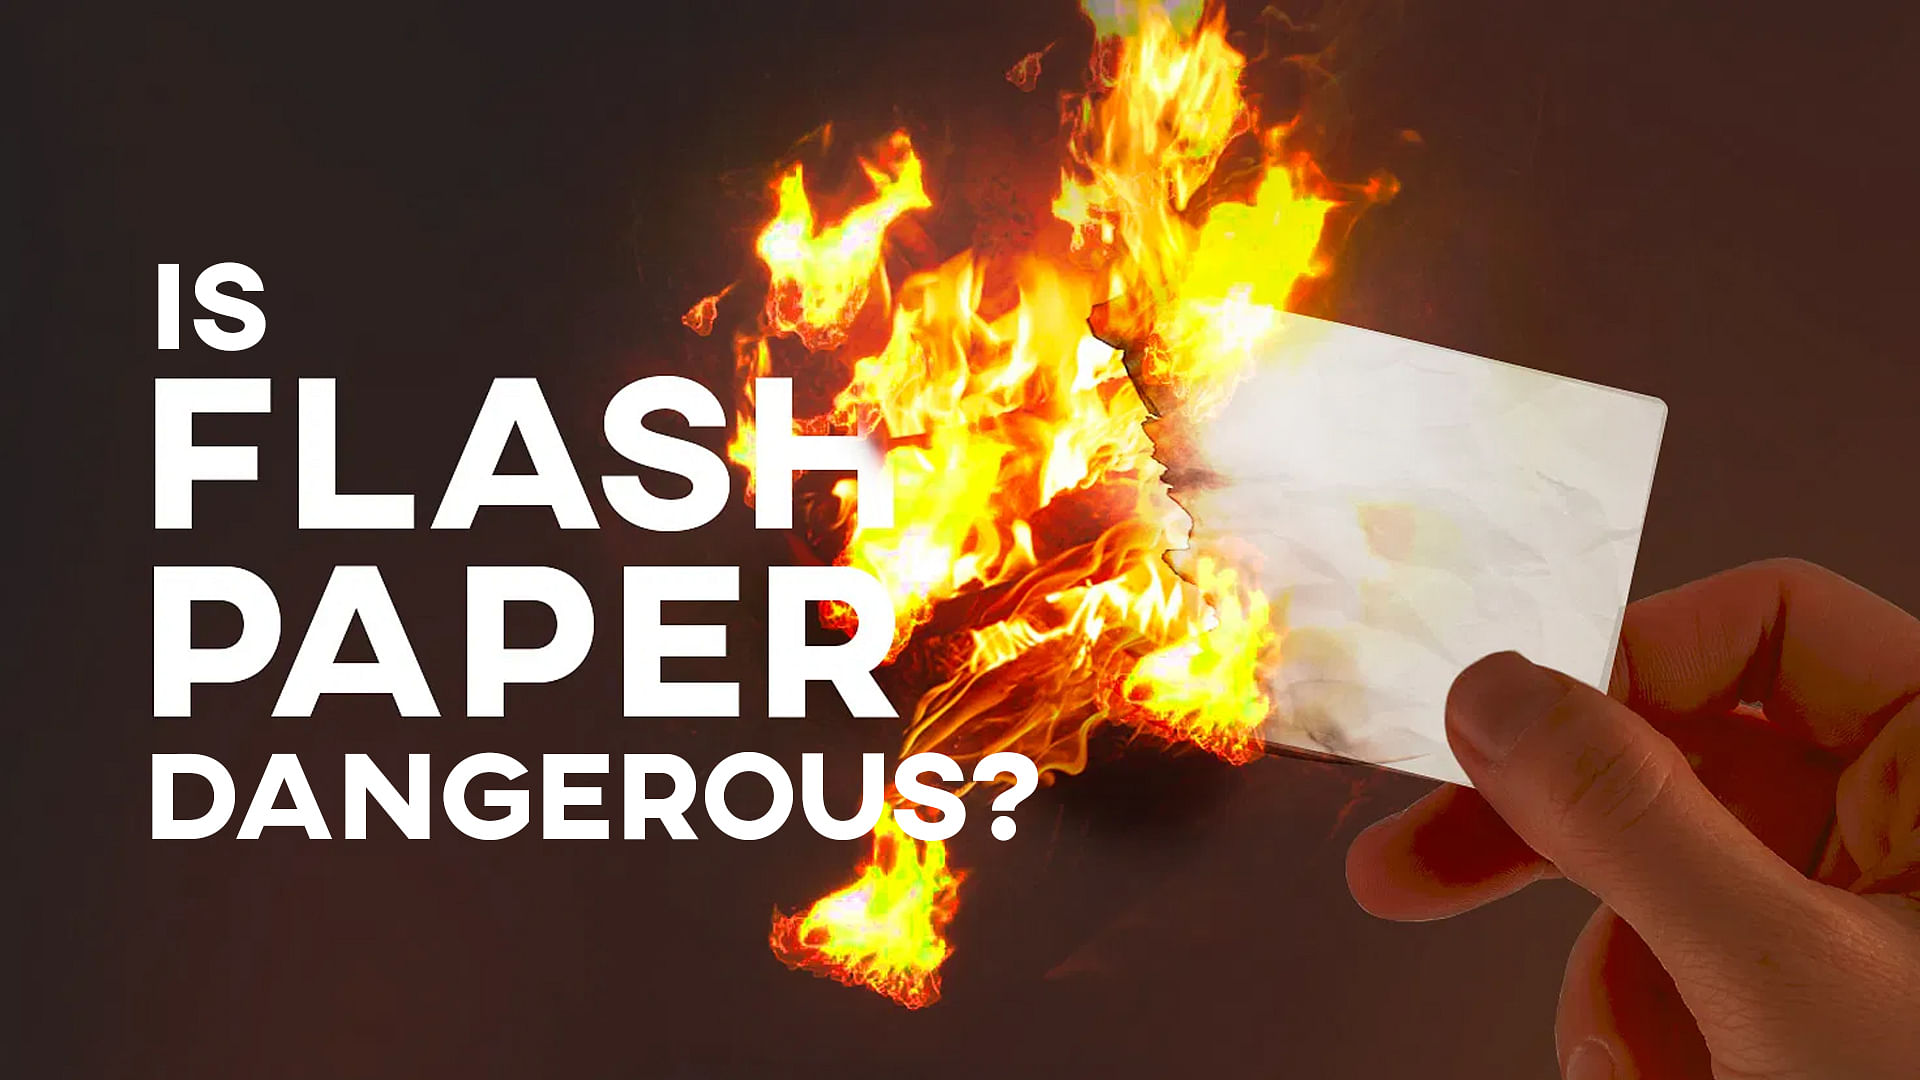 Is Flash Paper Dangerous?